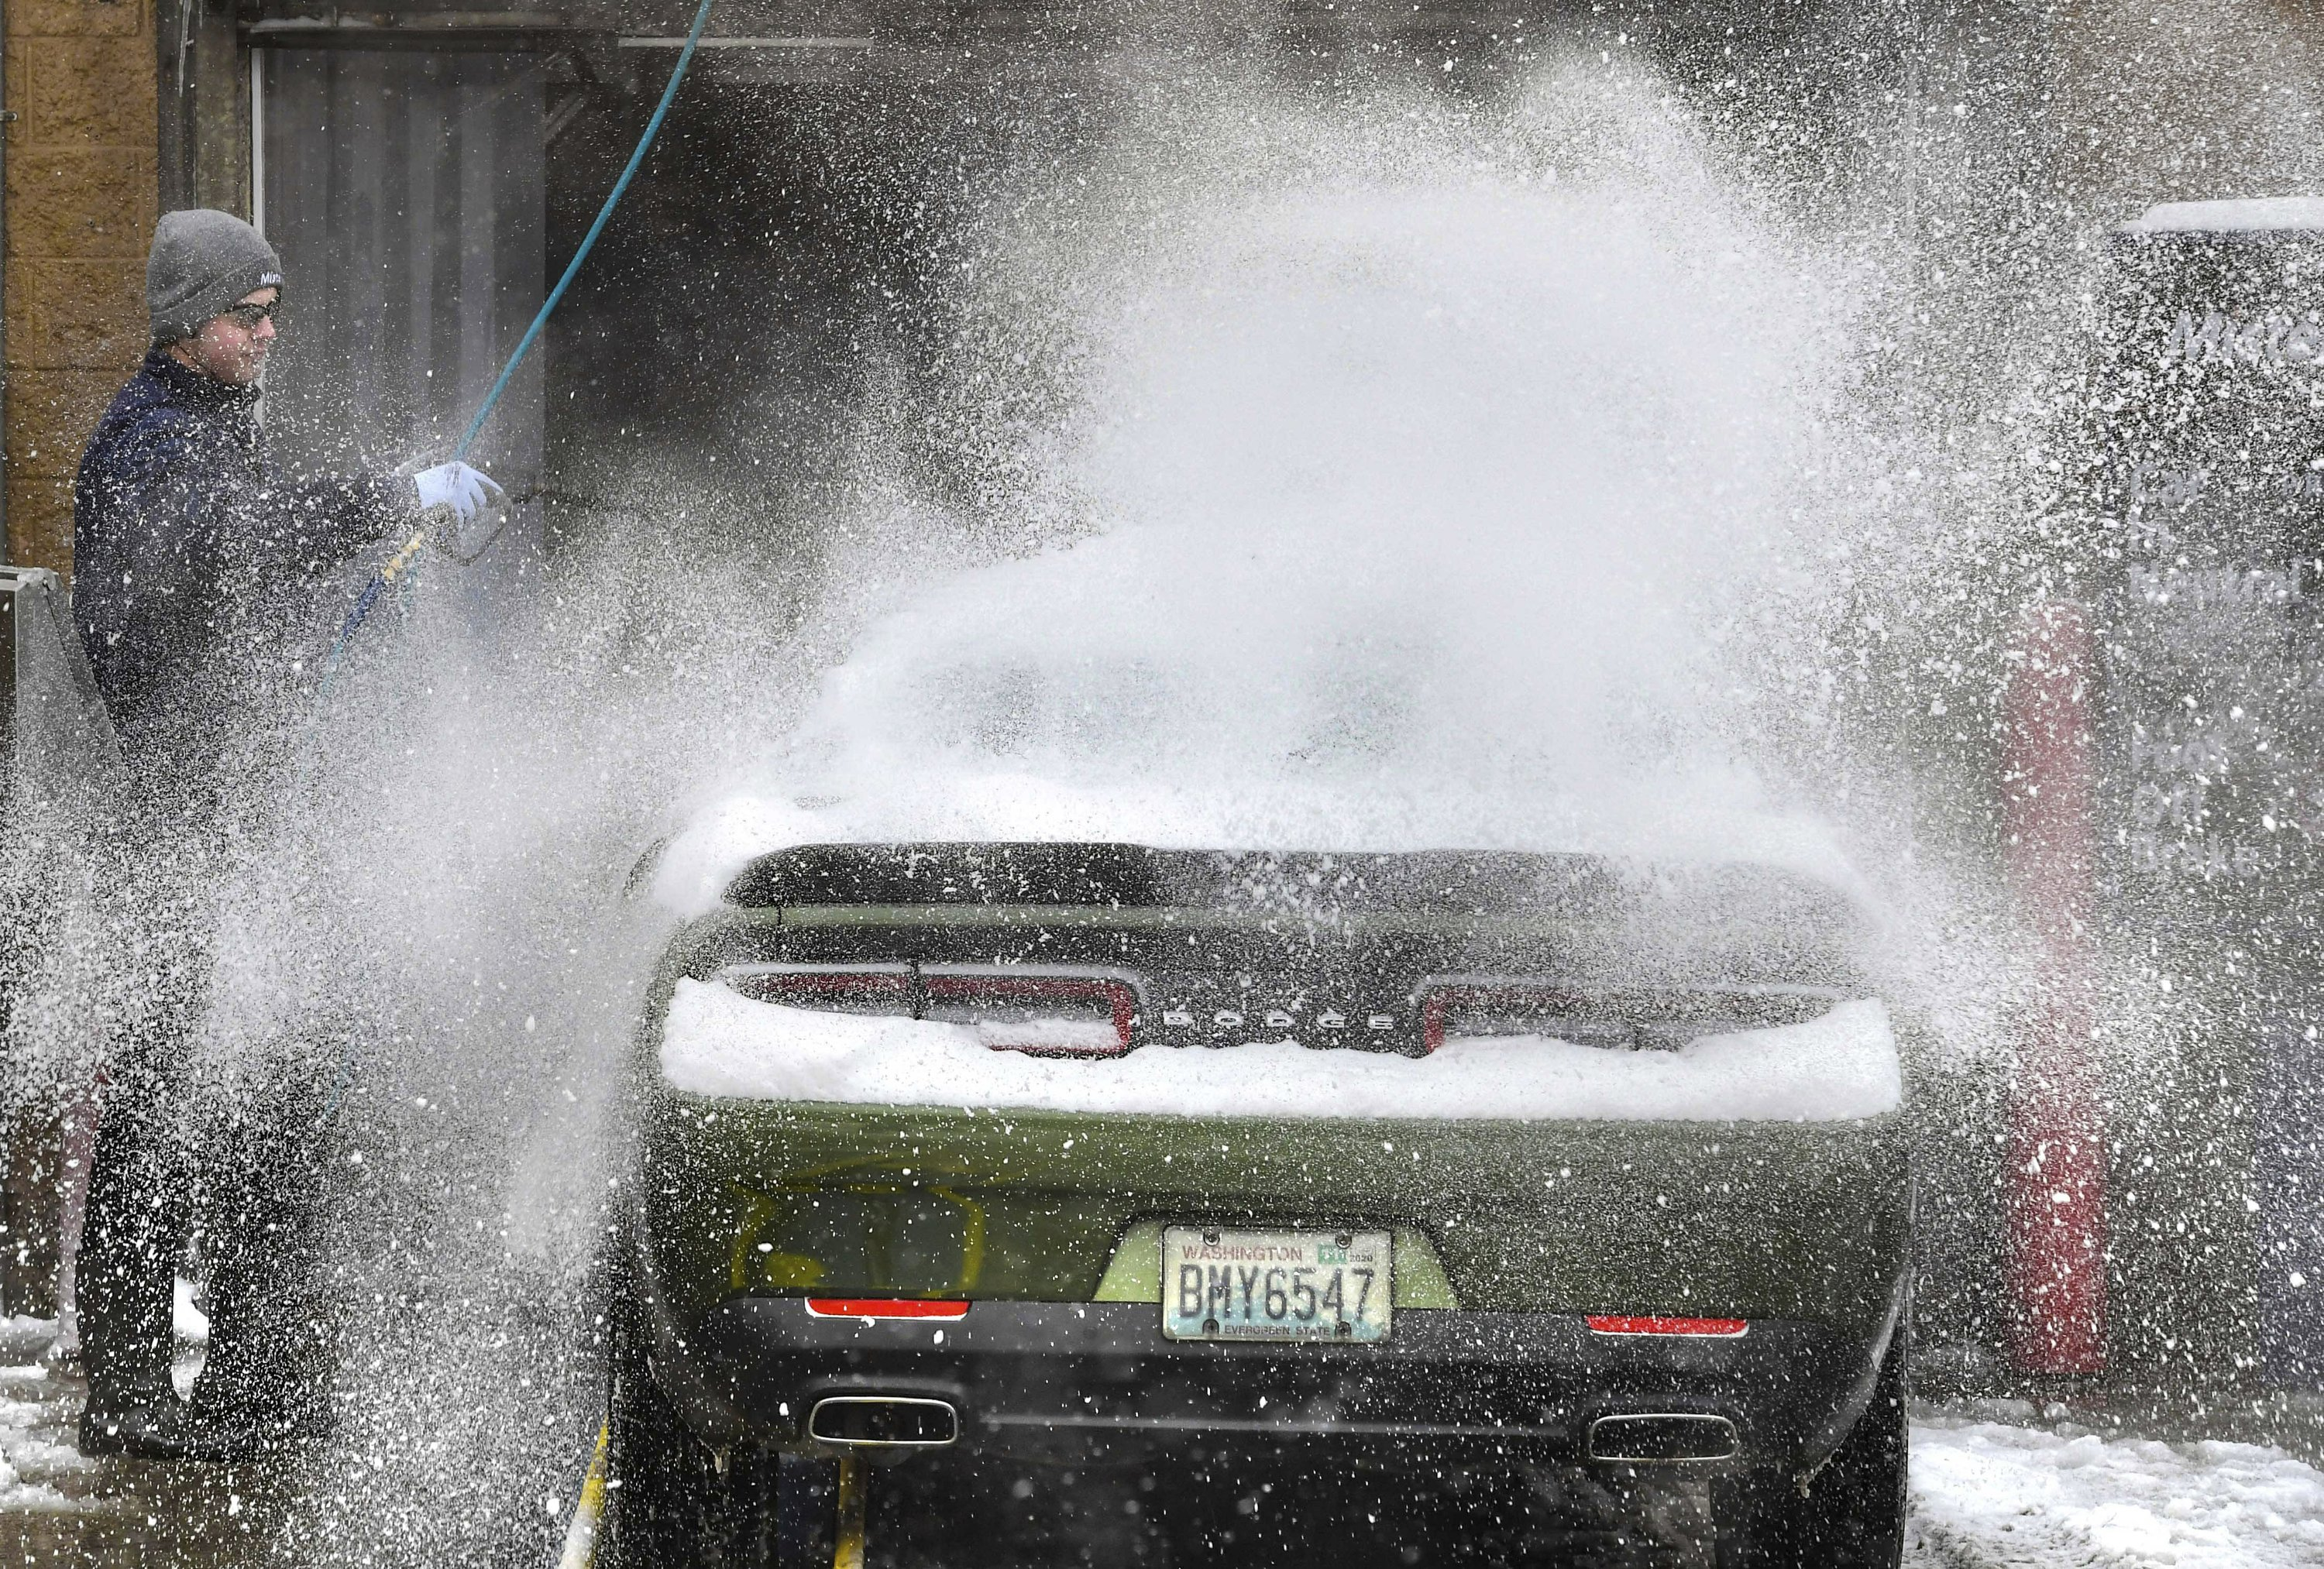 Northwest hit with more snow, wind, power outages, 2 rescued